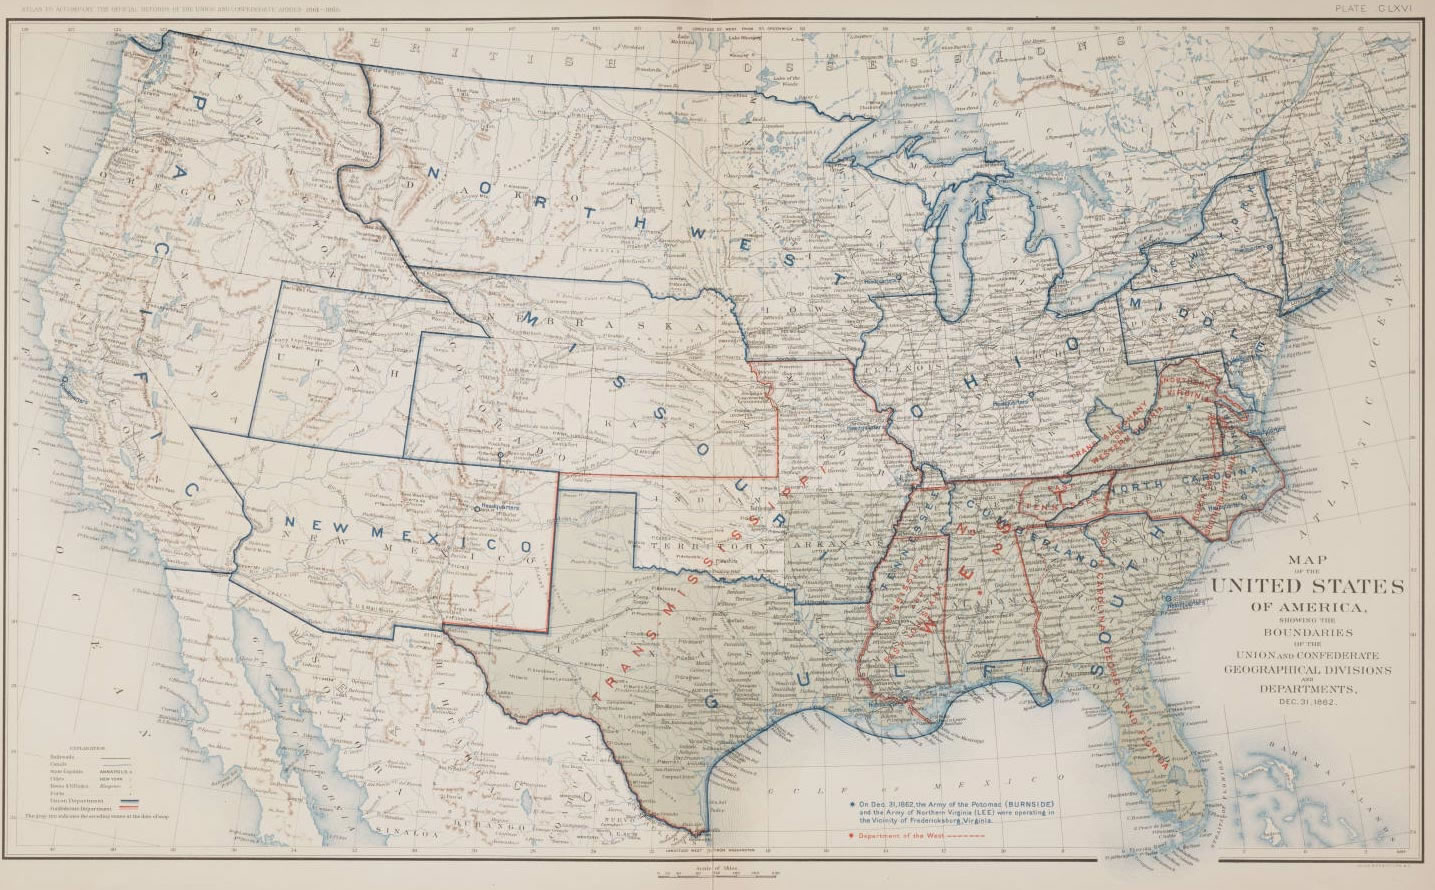 Maps Of The USA The United States Of America Political United - Map of us states in 1800s